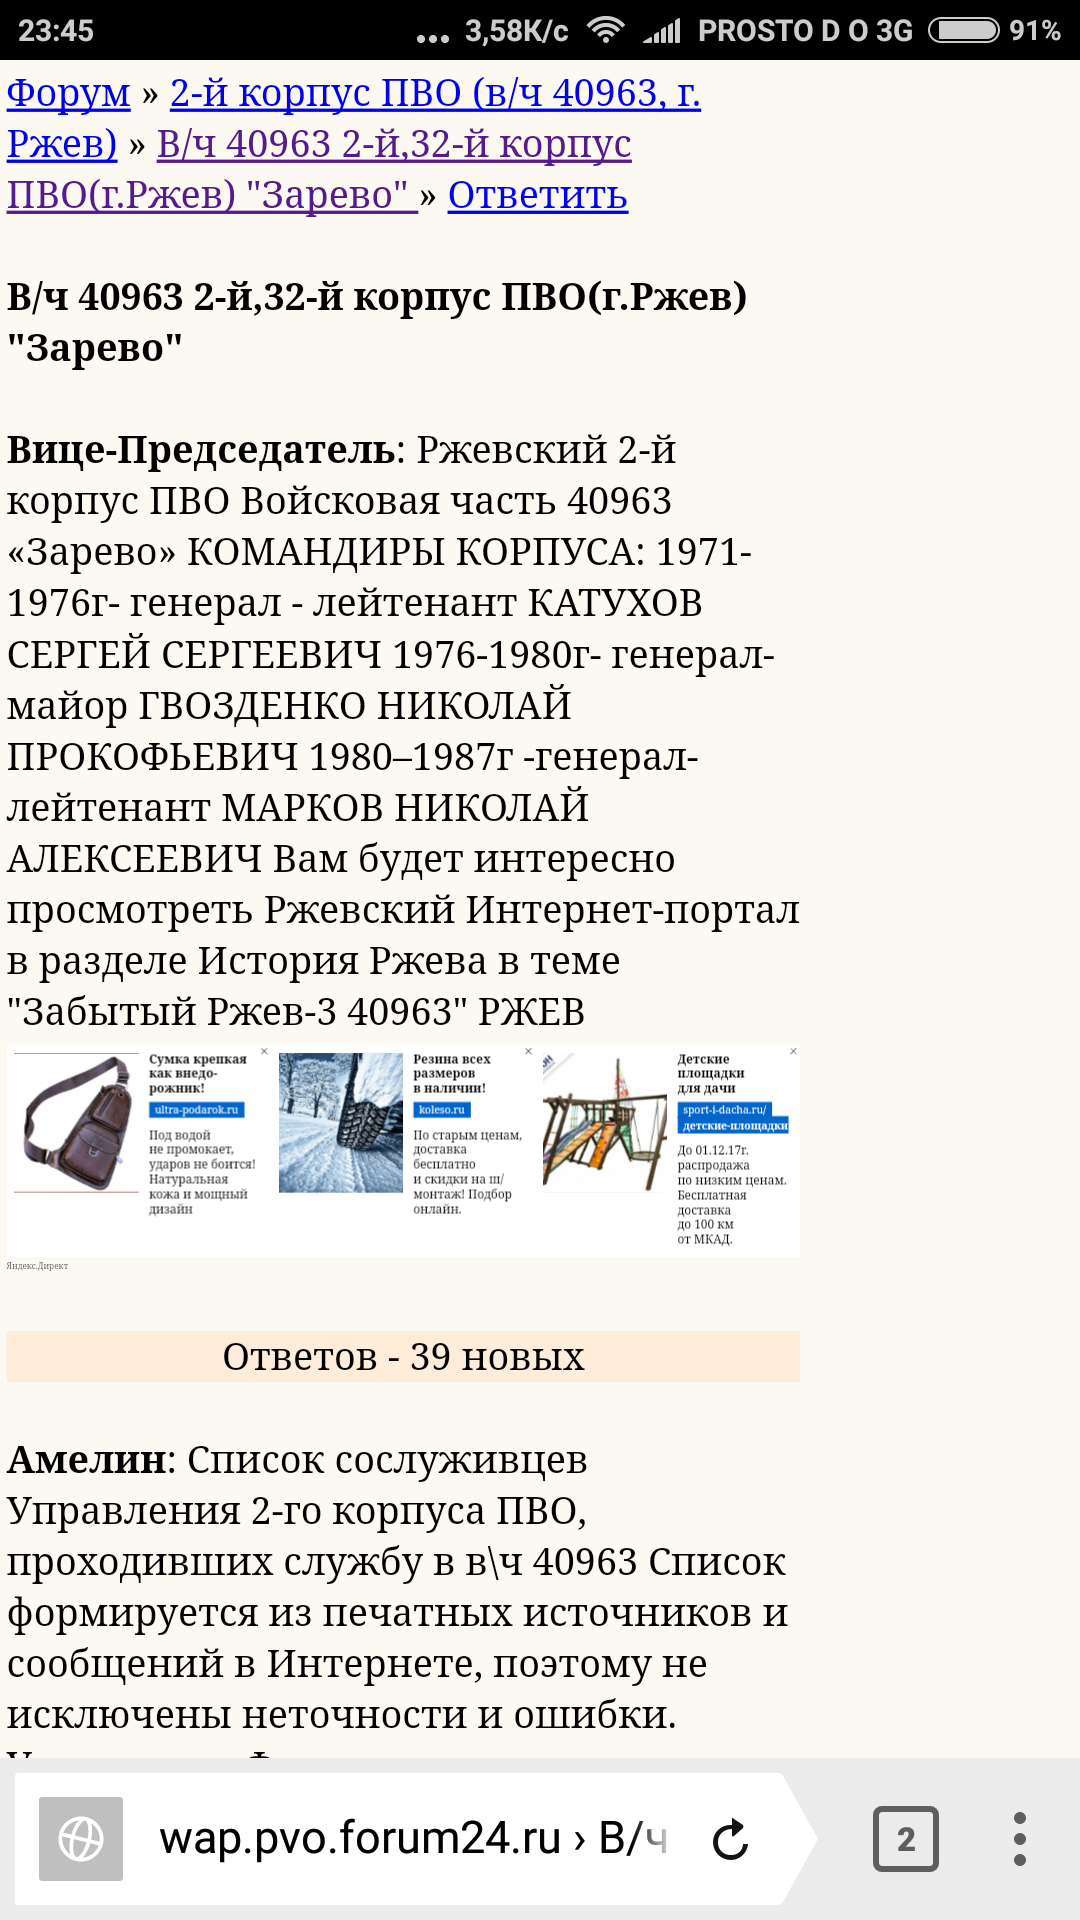 Screenshot_2017-11-02-23-45-05-672_com.yandex.browser.png